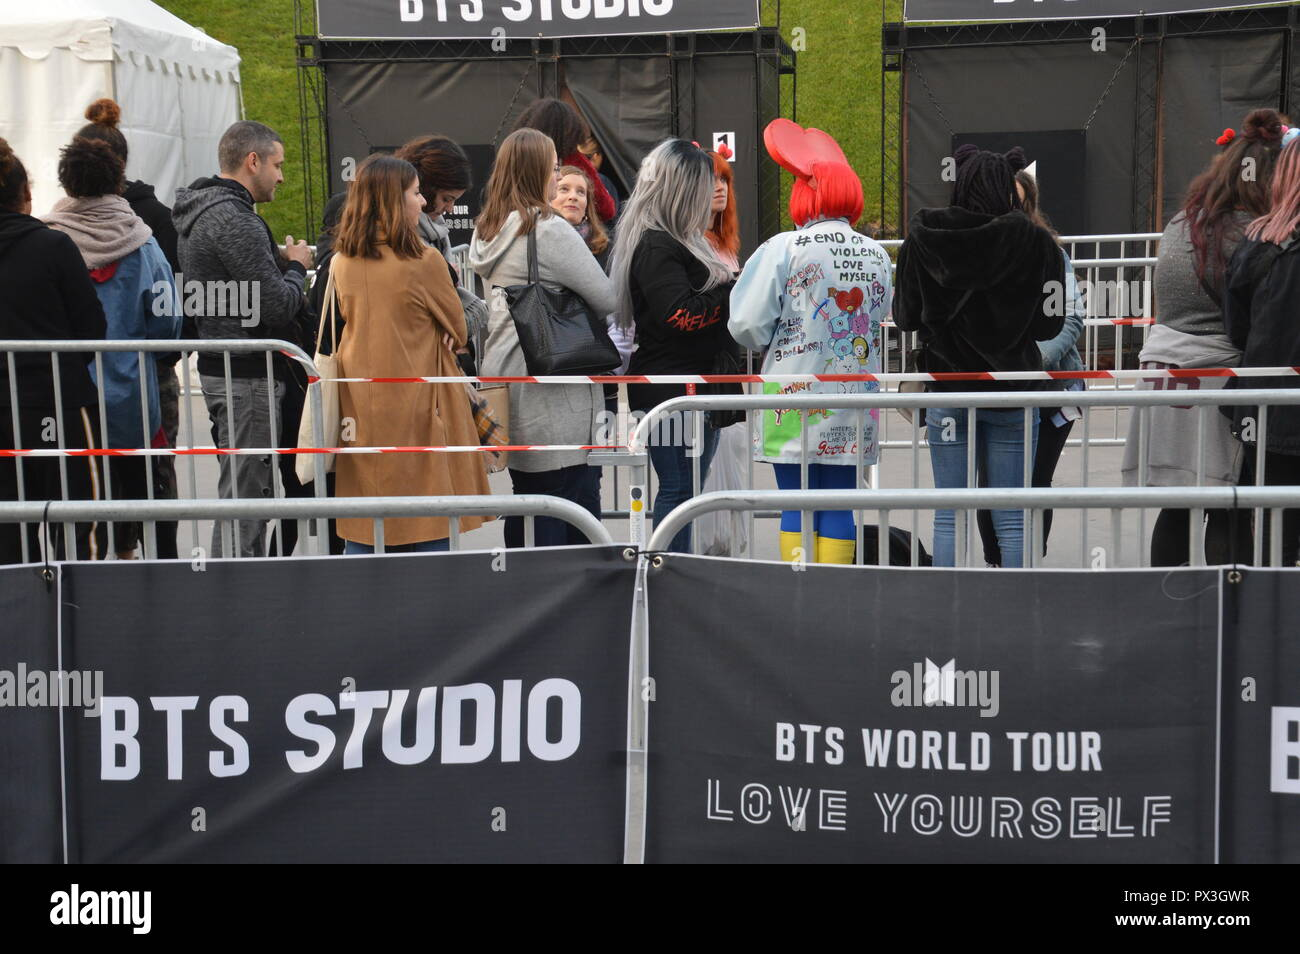 Bts Boy Band Stock Photos & Bts Boy Band Stock Images - Alamy